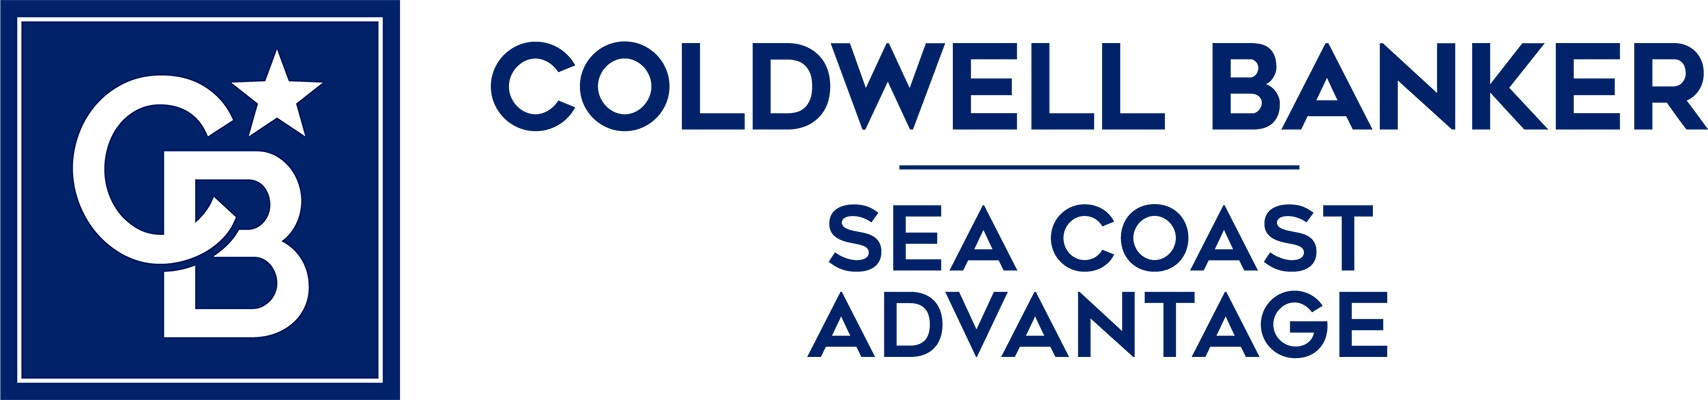 Patty Lewis - Coldwell Banker Sea Coast Advantage Realty Logo